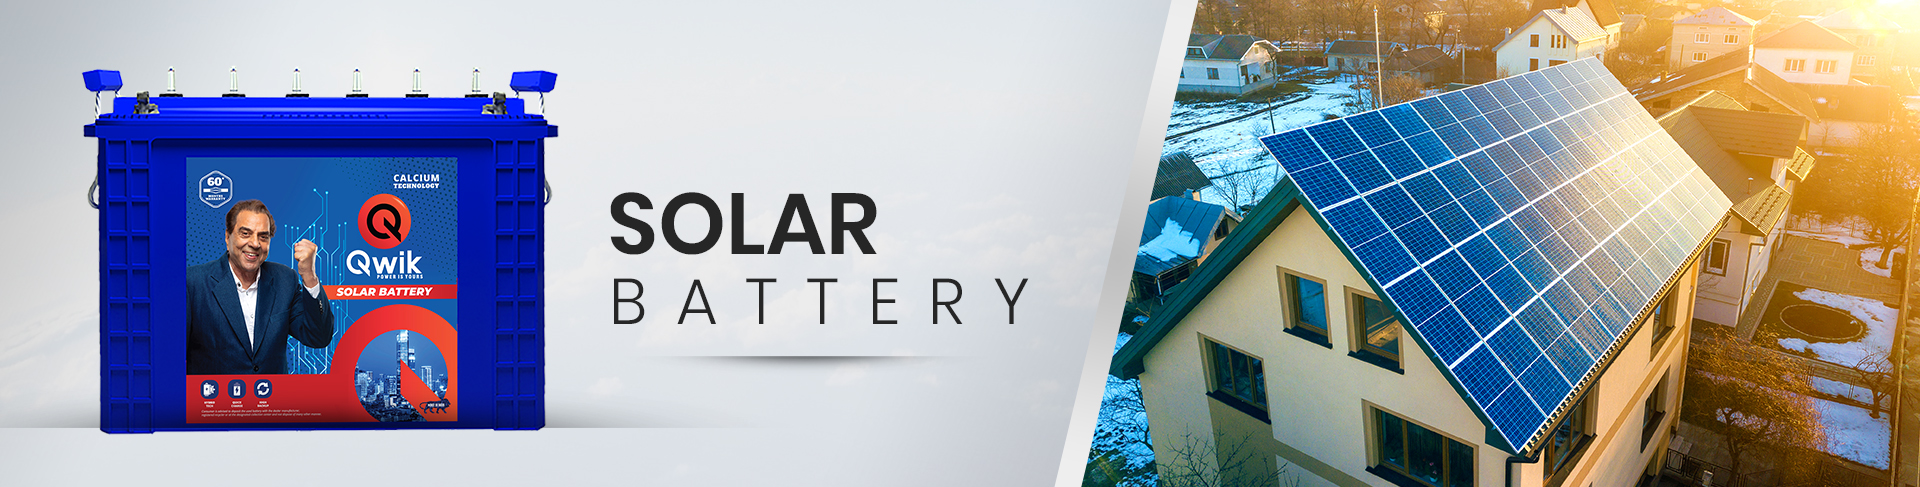 solar batteries in india